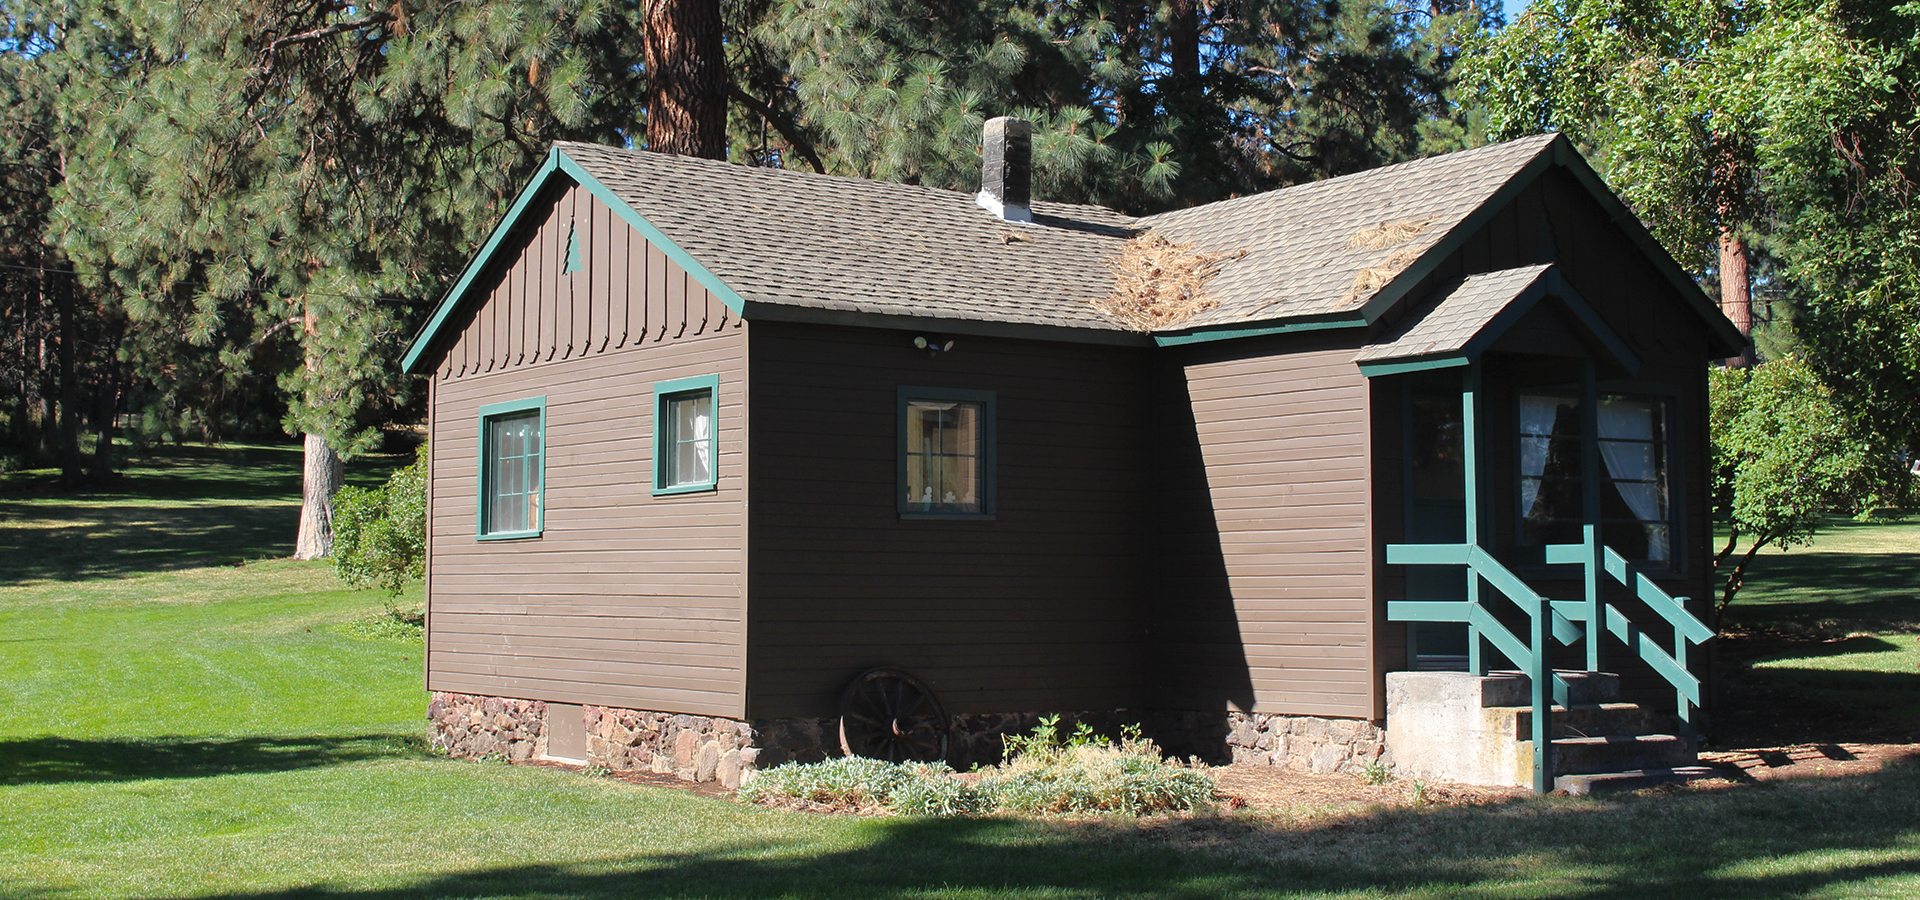 Hollinshead-Homestead-House-in-Bend-Oregon